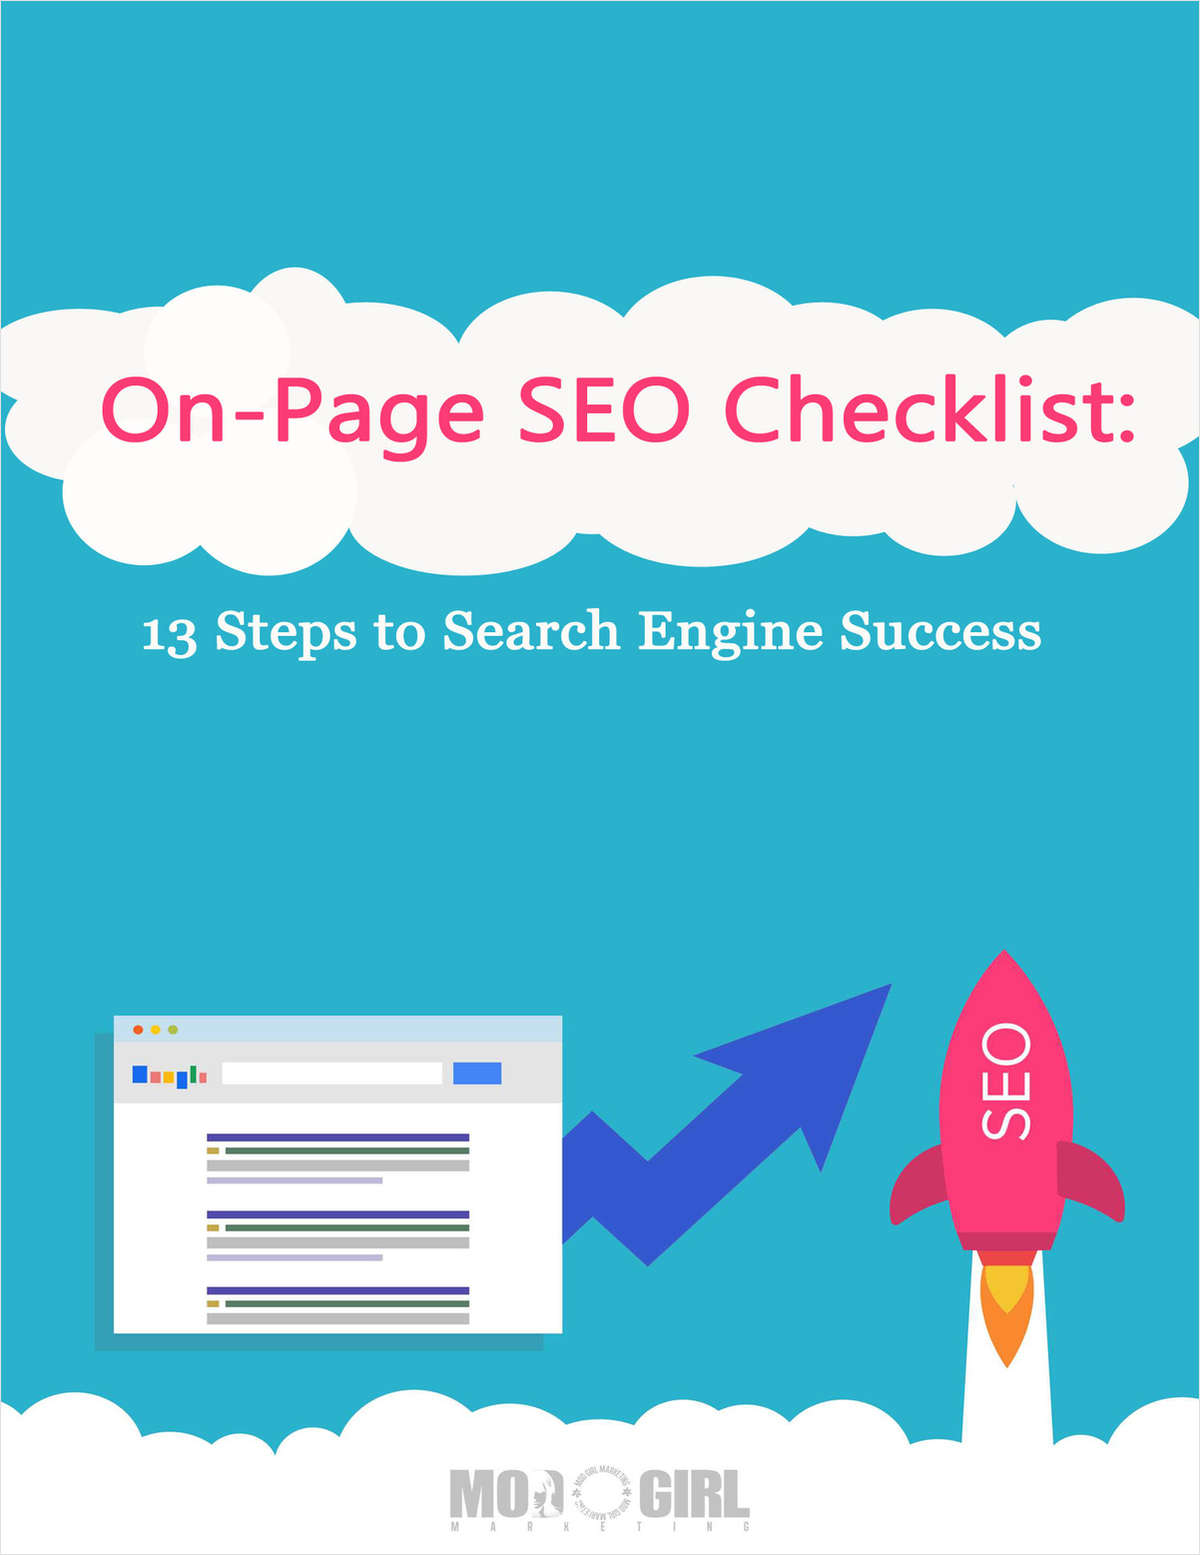 On-Page SEO Checklist: 13 Steps to Search Engine Success